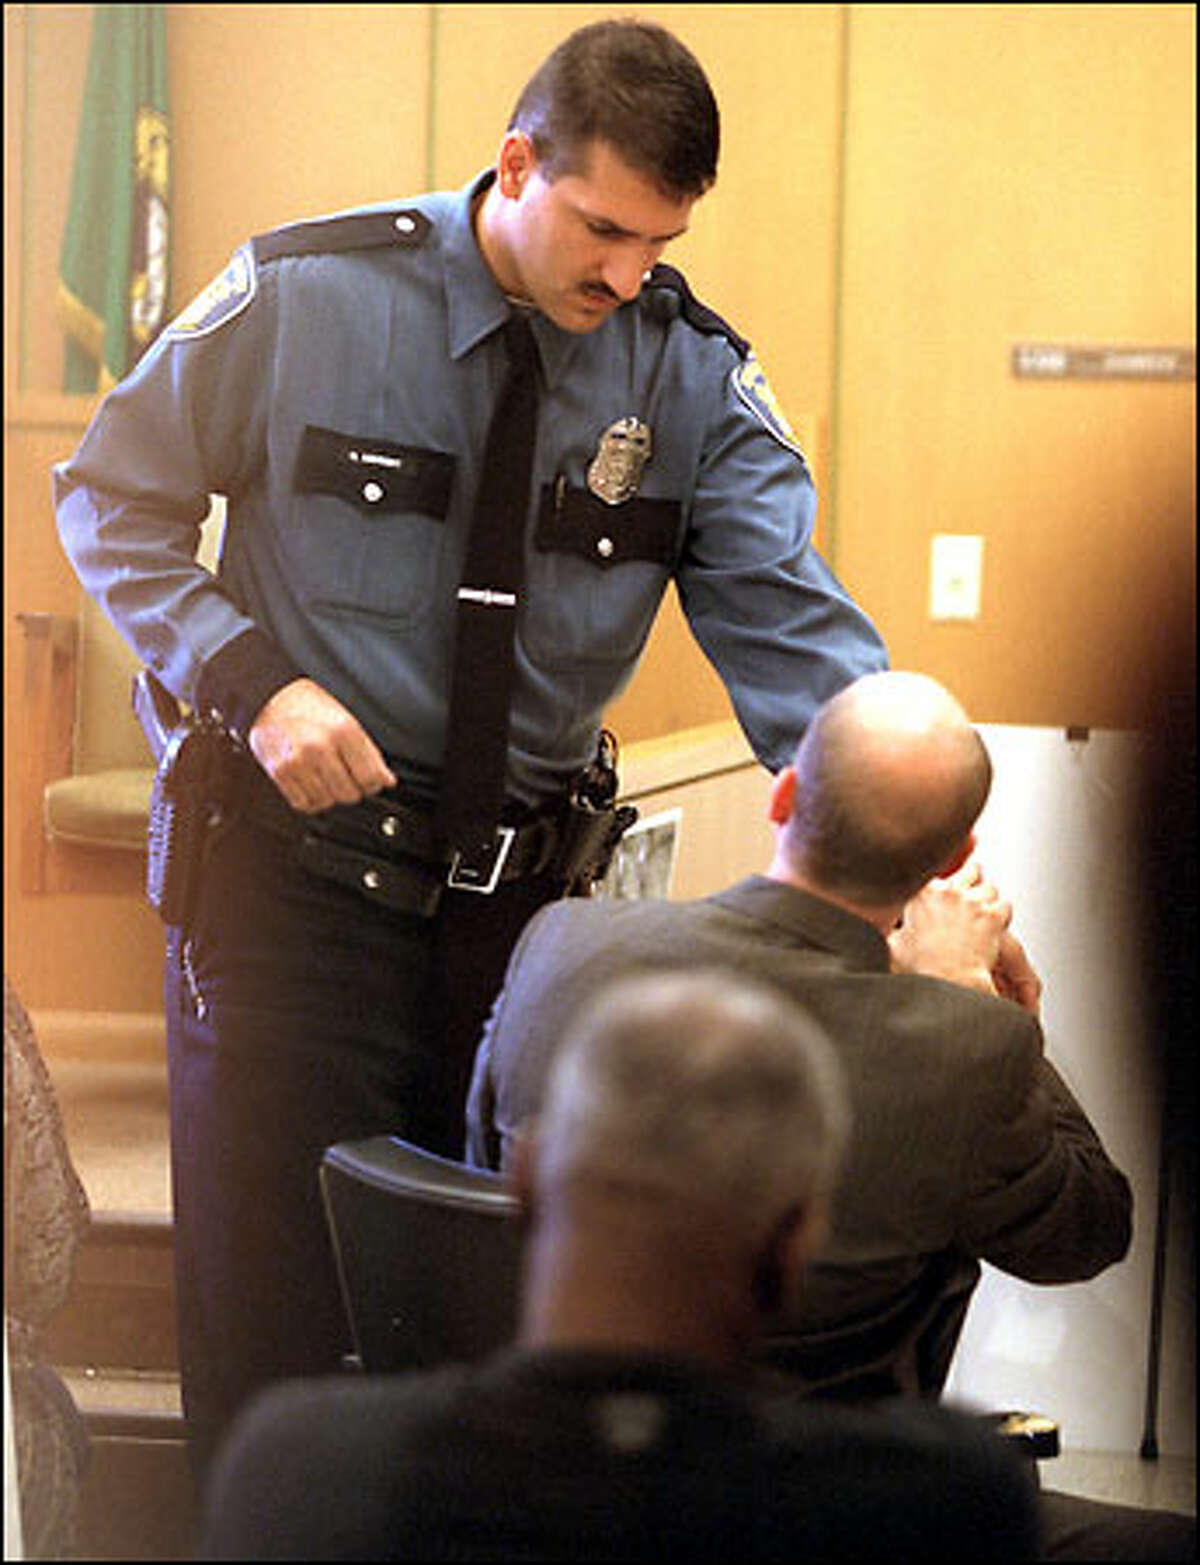 Officer Greg Neubert describes to Deputy Prosecutor Mike Lang how Aaron Roberts grabbed his wrist during the traffic stop that led to Roberts' shooting.